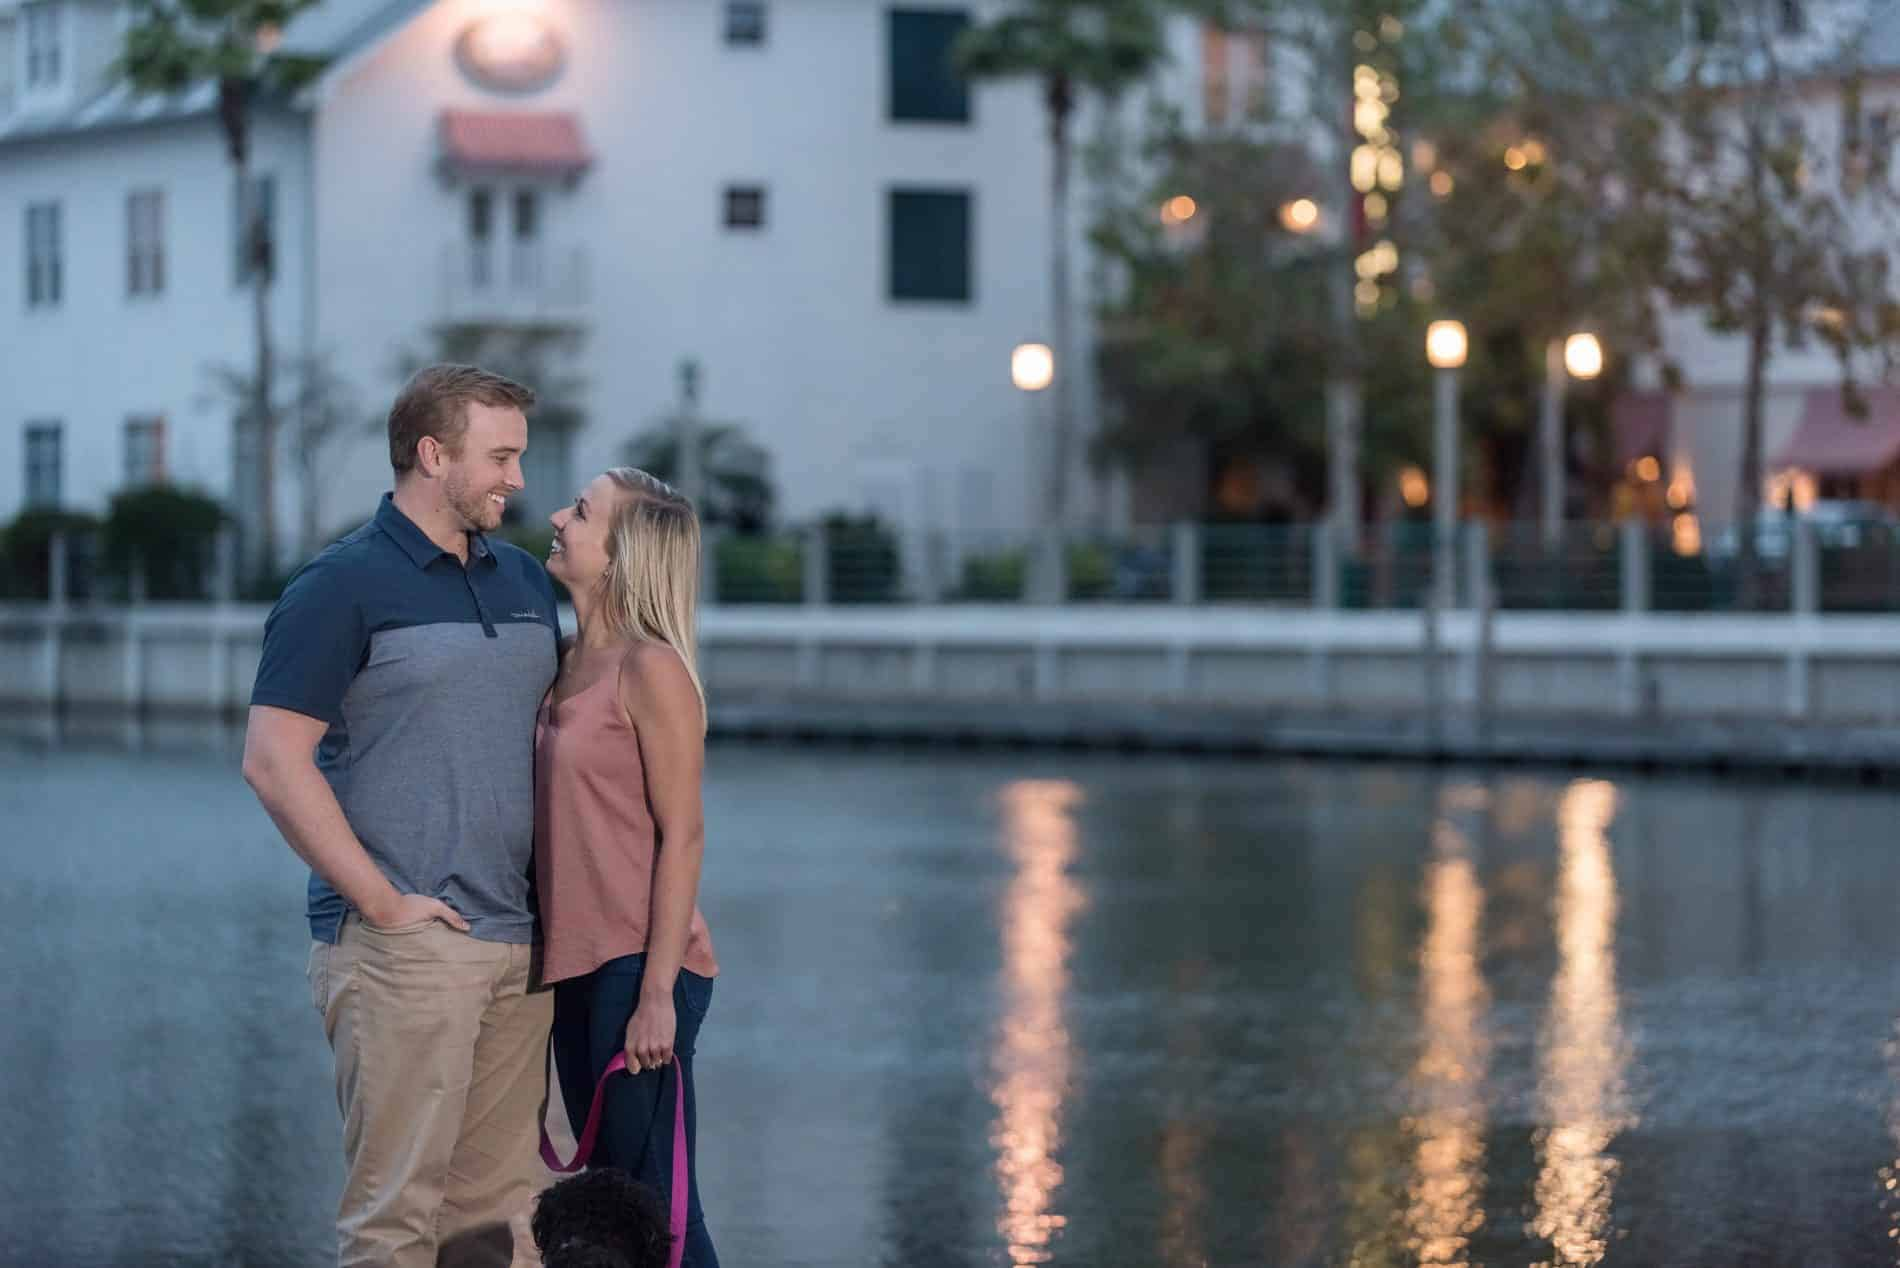 Bohemian Hotel Celebration in the background of this Engagement Photo